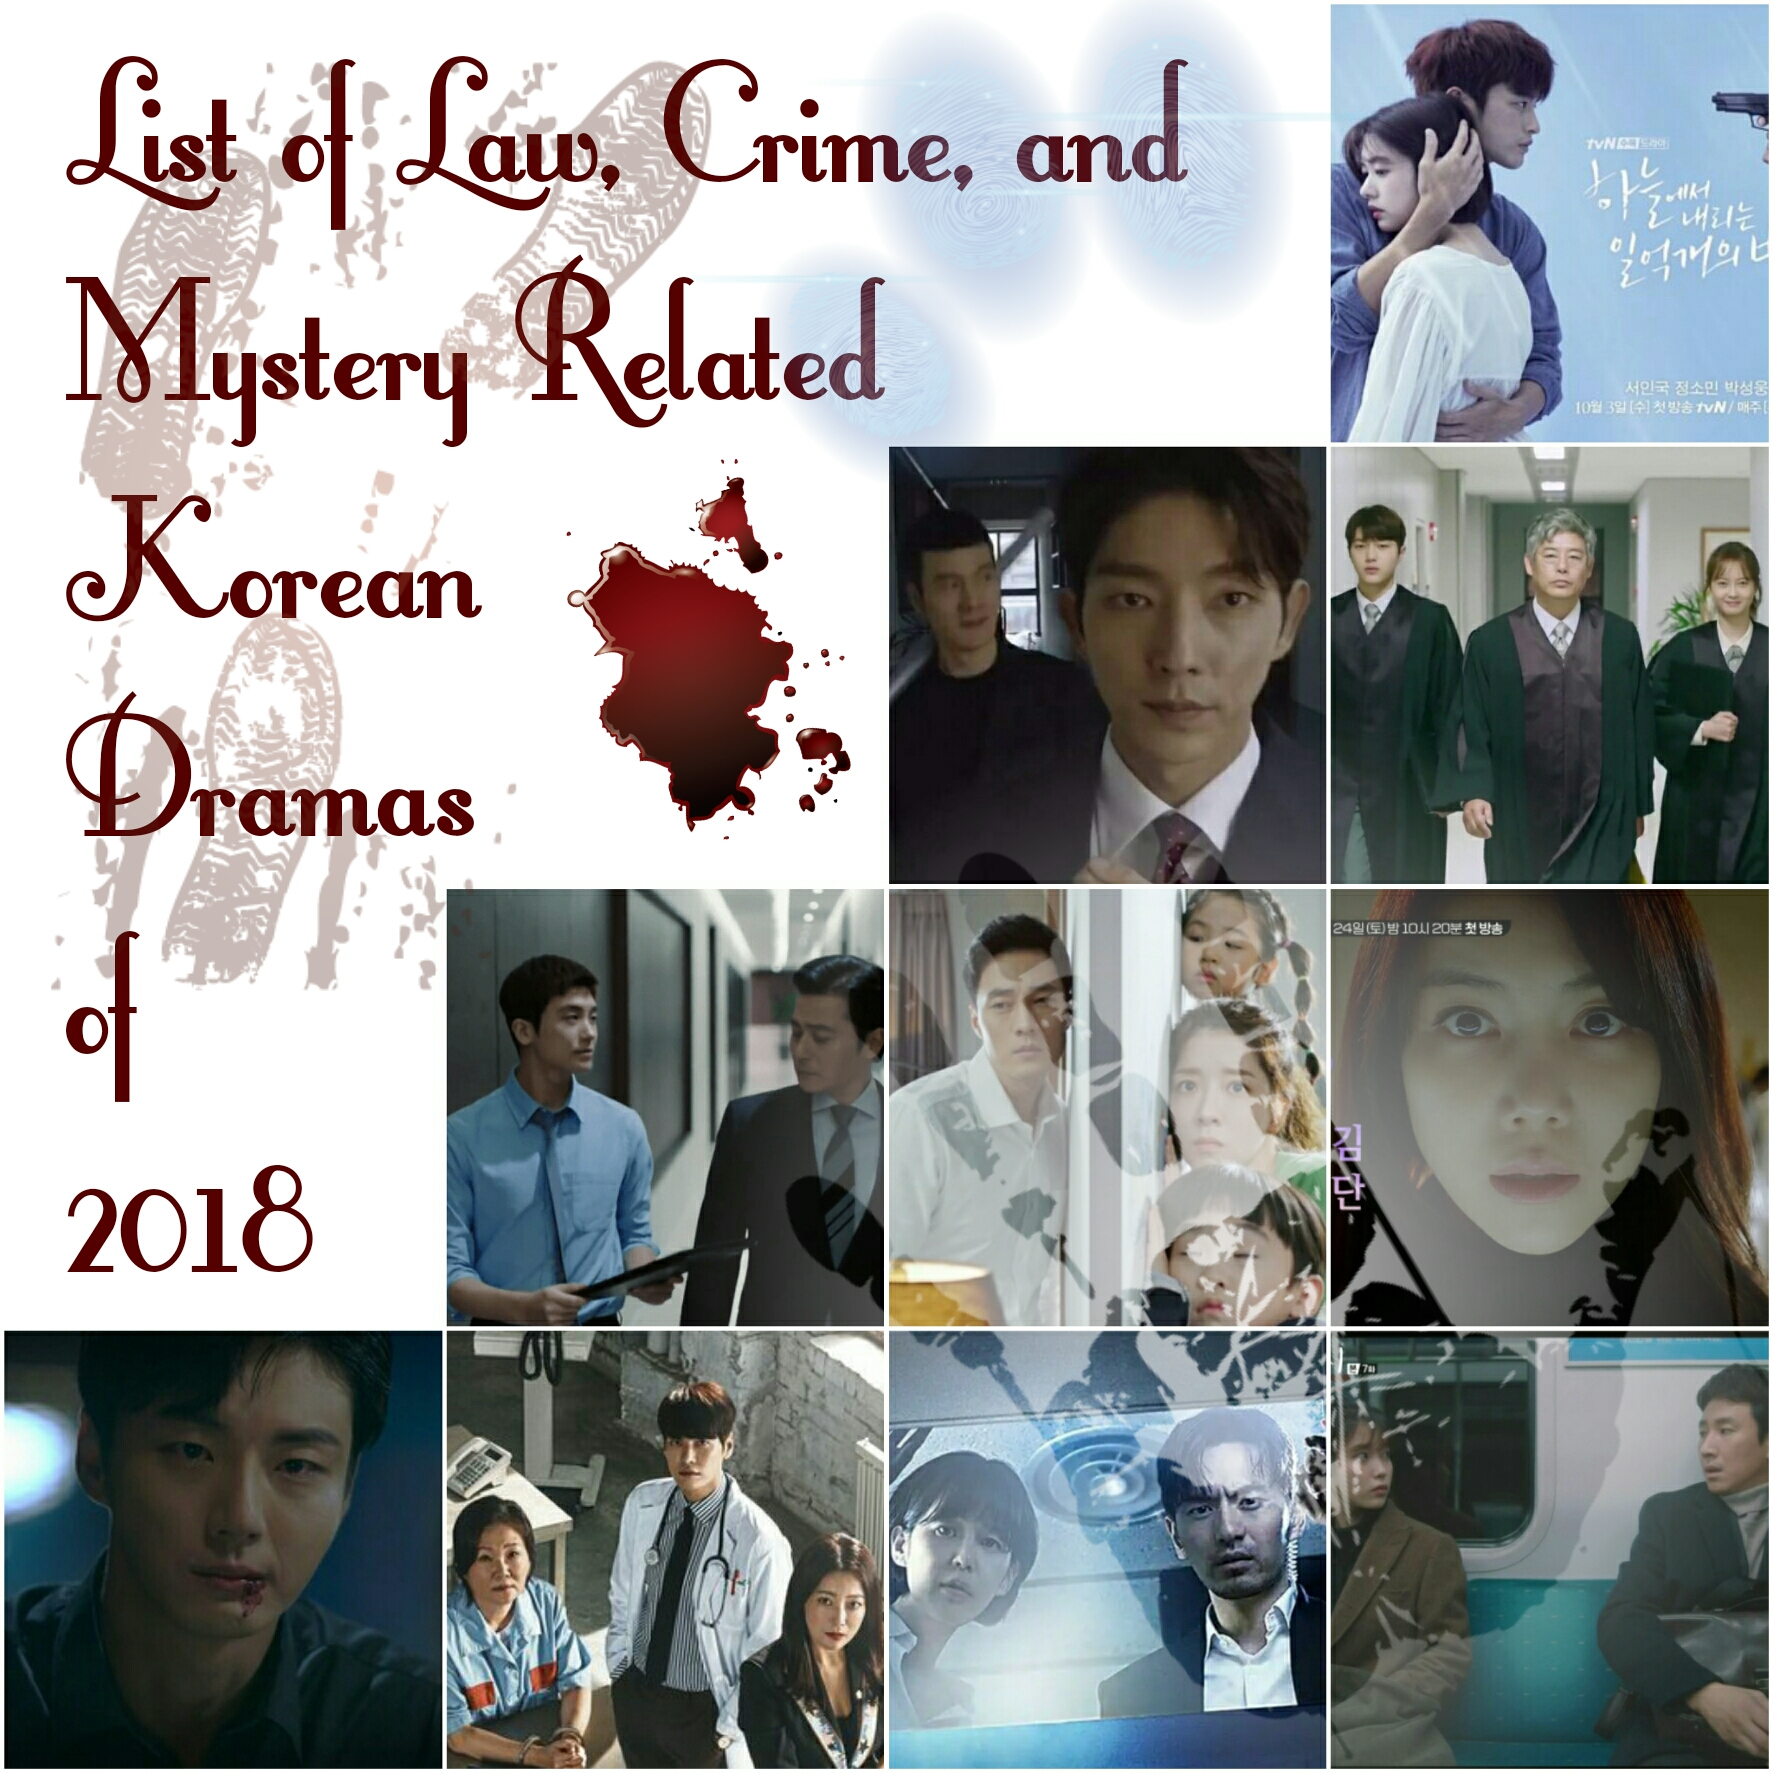 27 List Of Law Crime Mystery Related Korean Dramas Of 2018